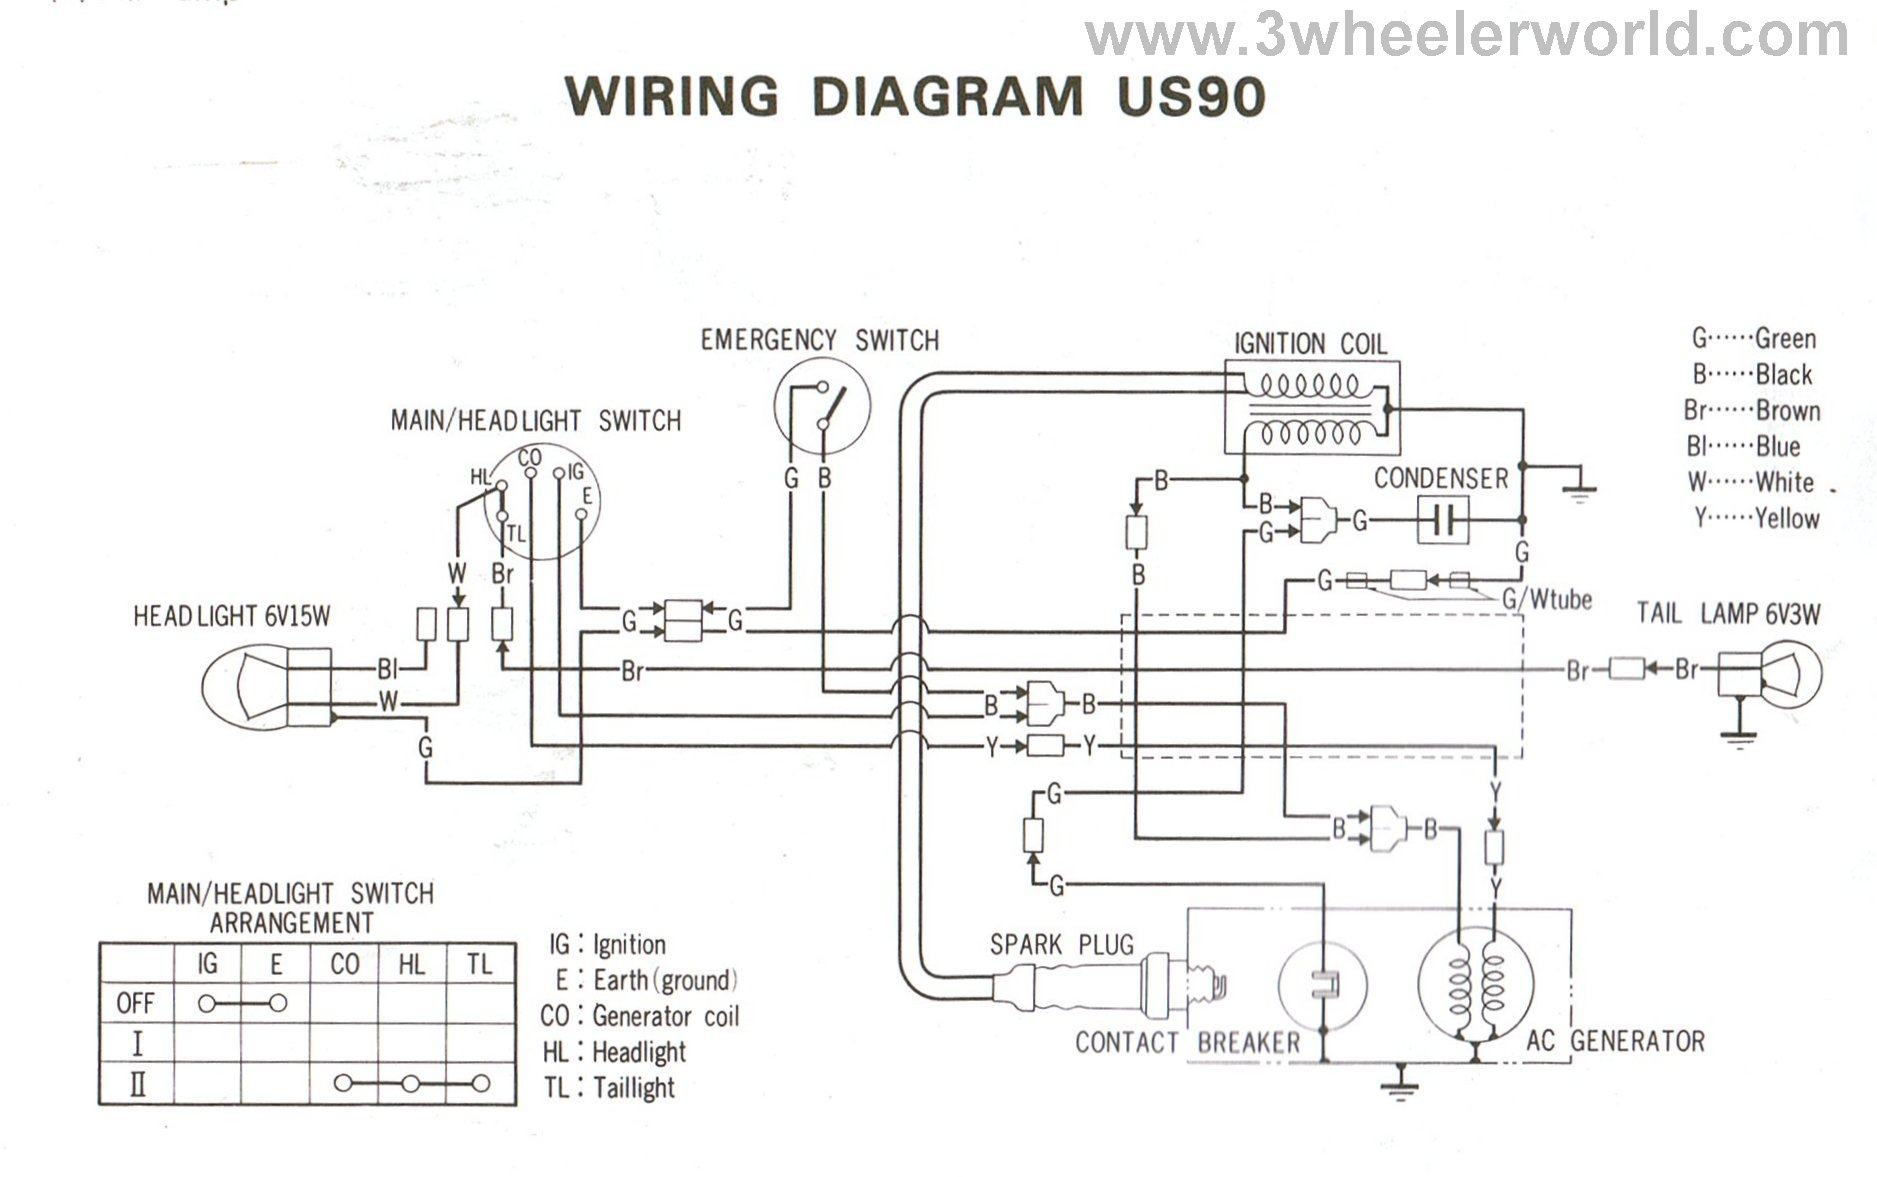 Honda Atc90 Wiring Diagram Schematics Trx 400 Foreman Books Of U2022 Cl70